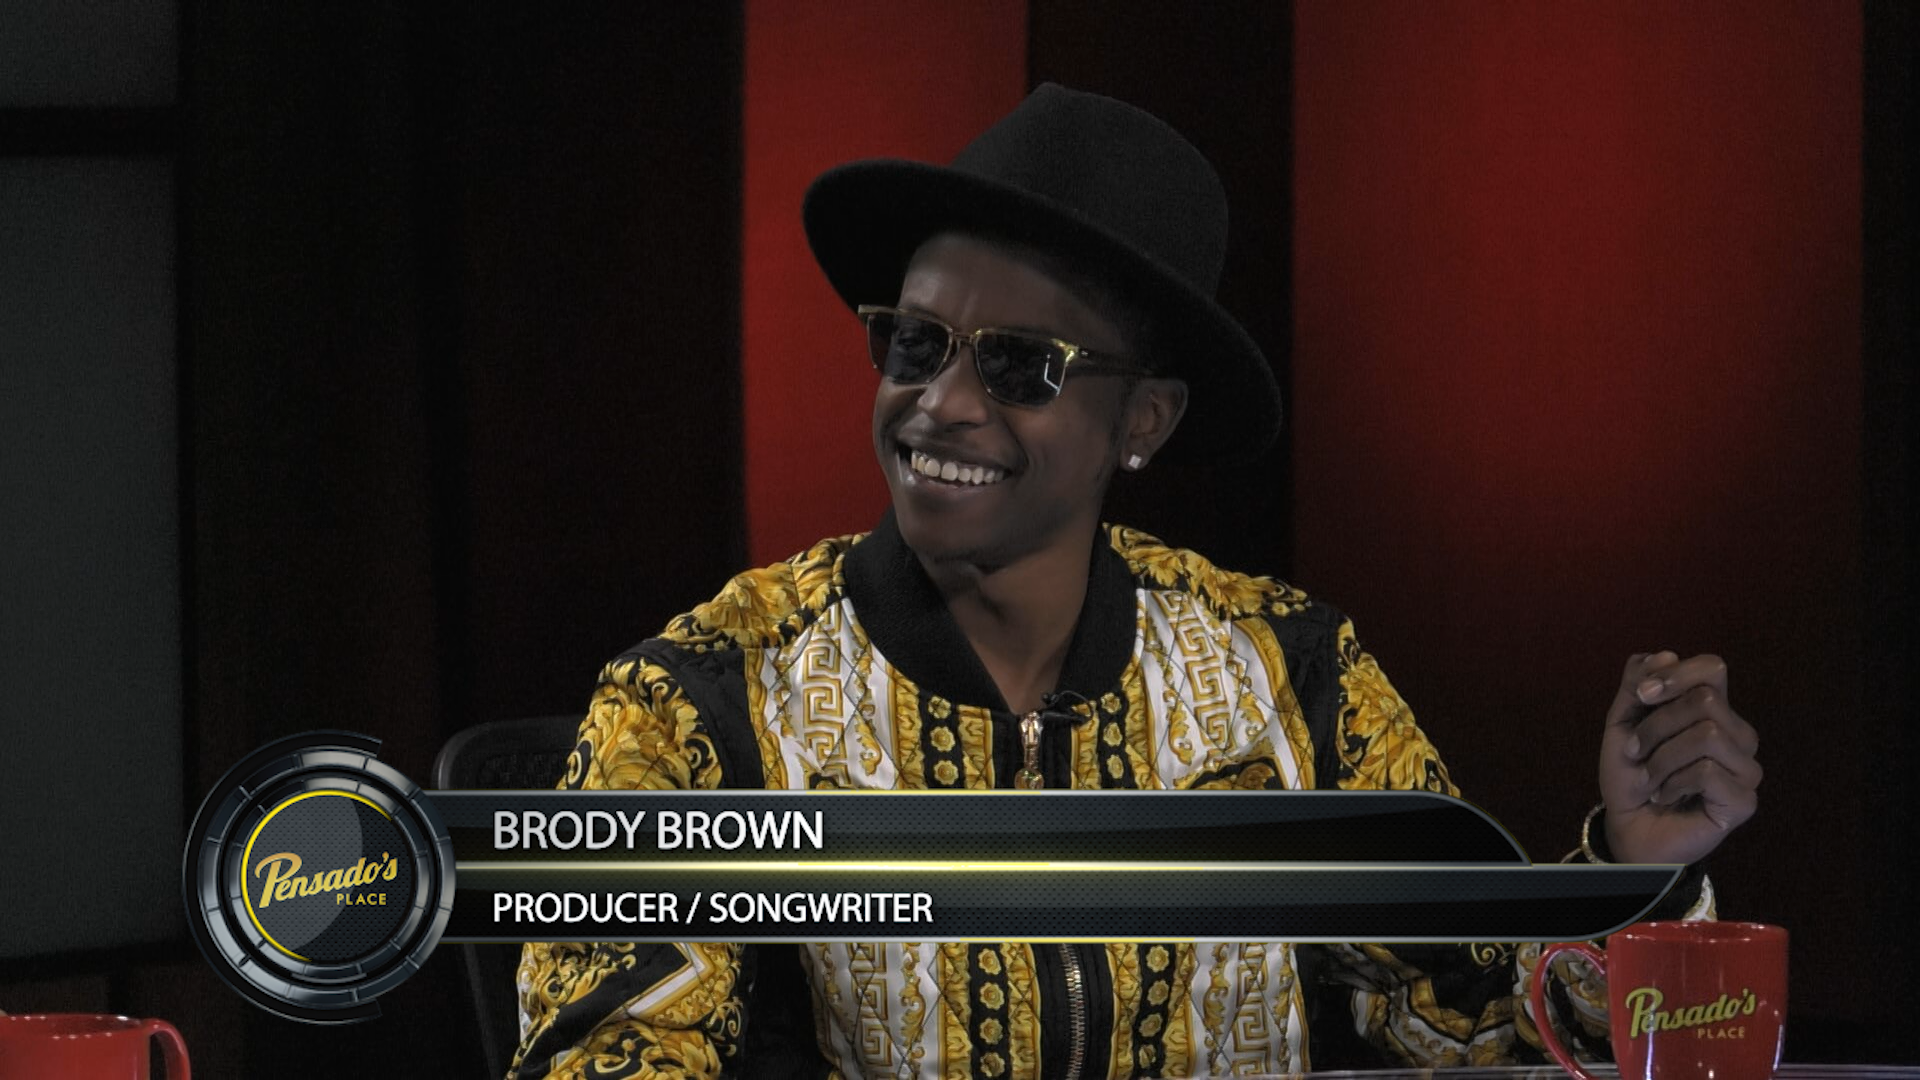 Grammy Nominated Producer/Songwriter Brody Brown